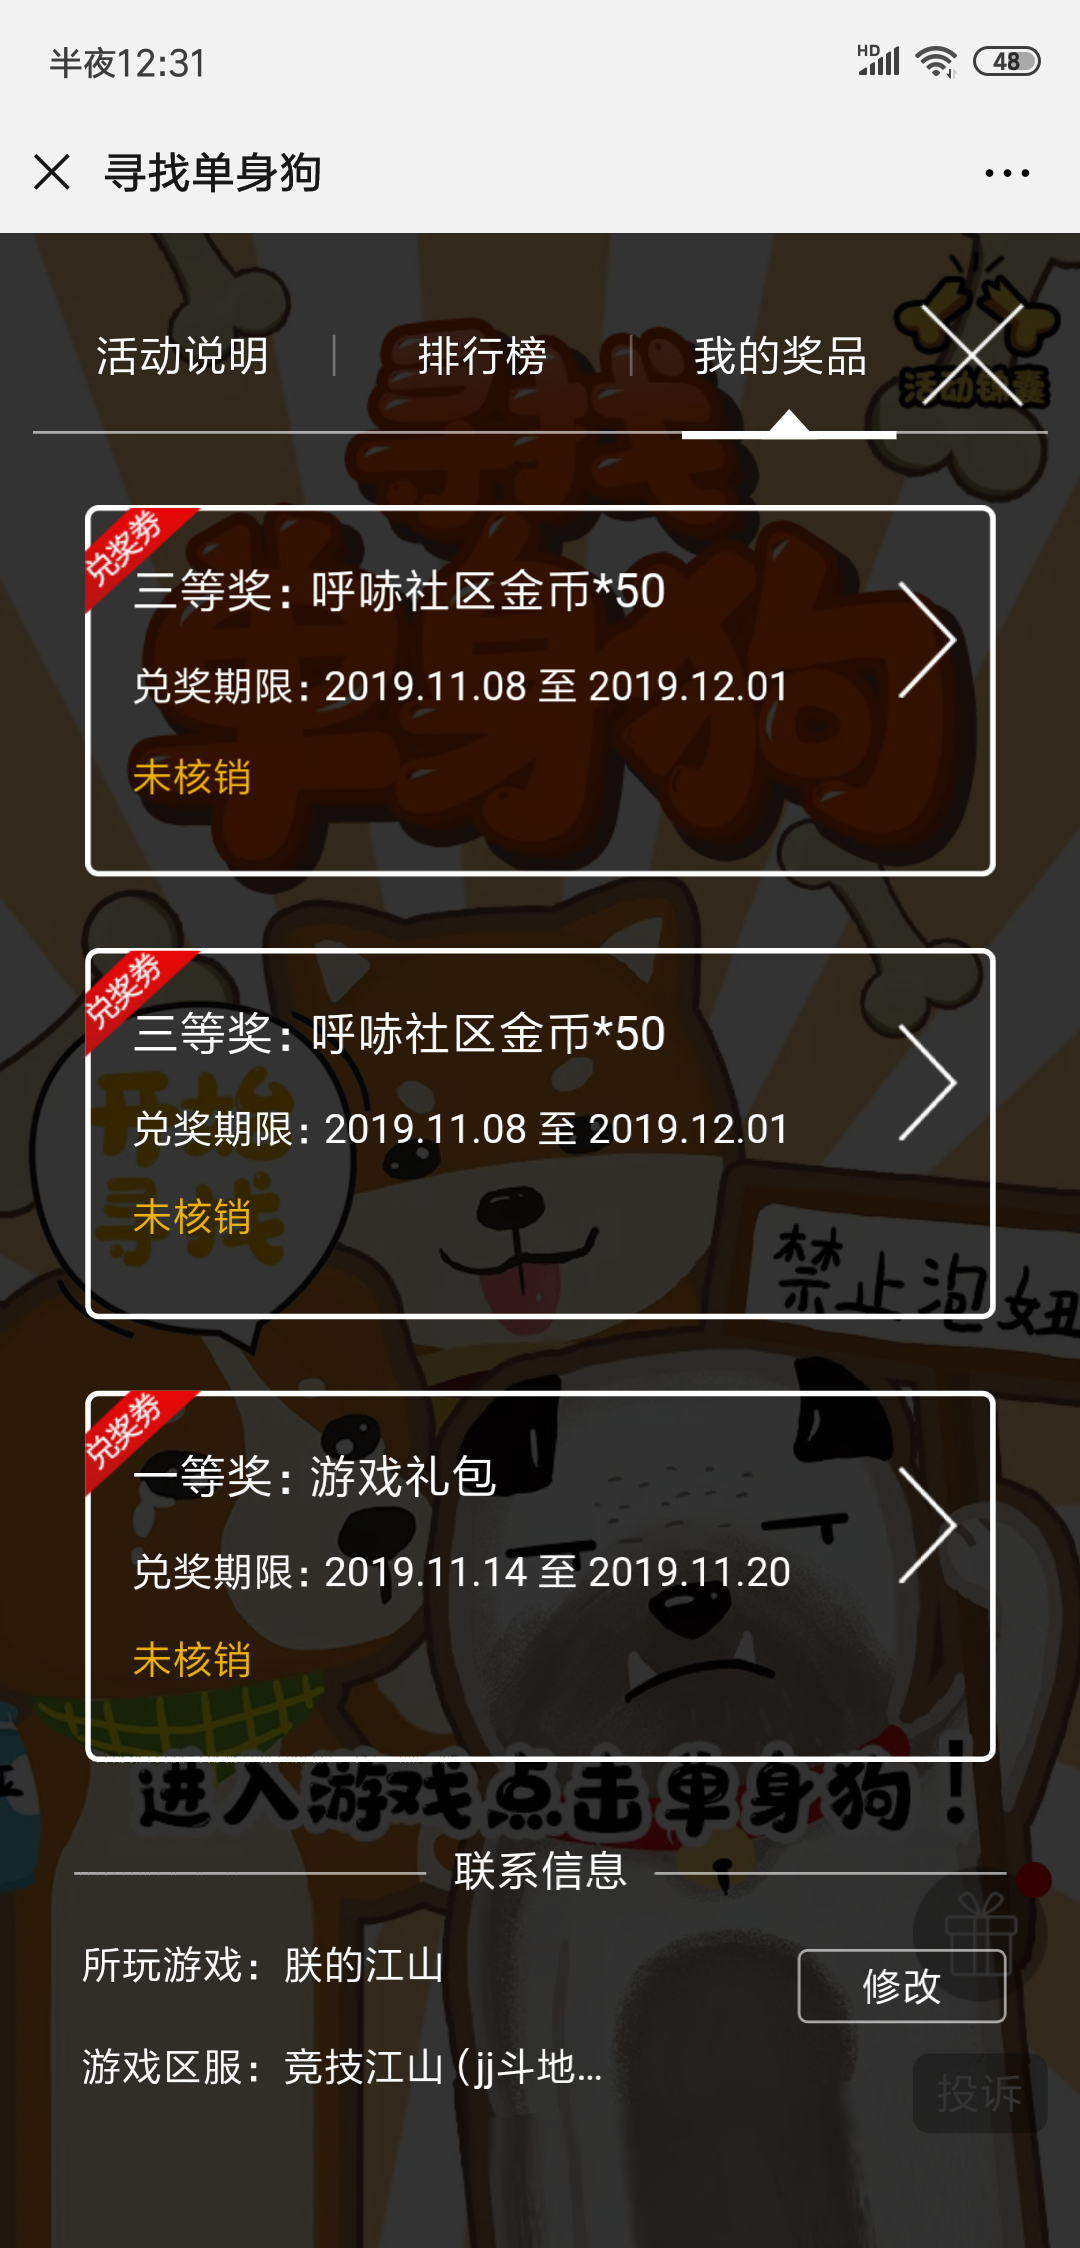 Screenshot_2019-11-11-00-31-28-065_com.tencent.mm.png